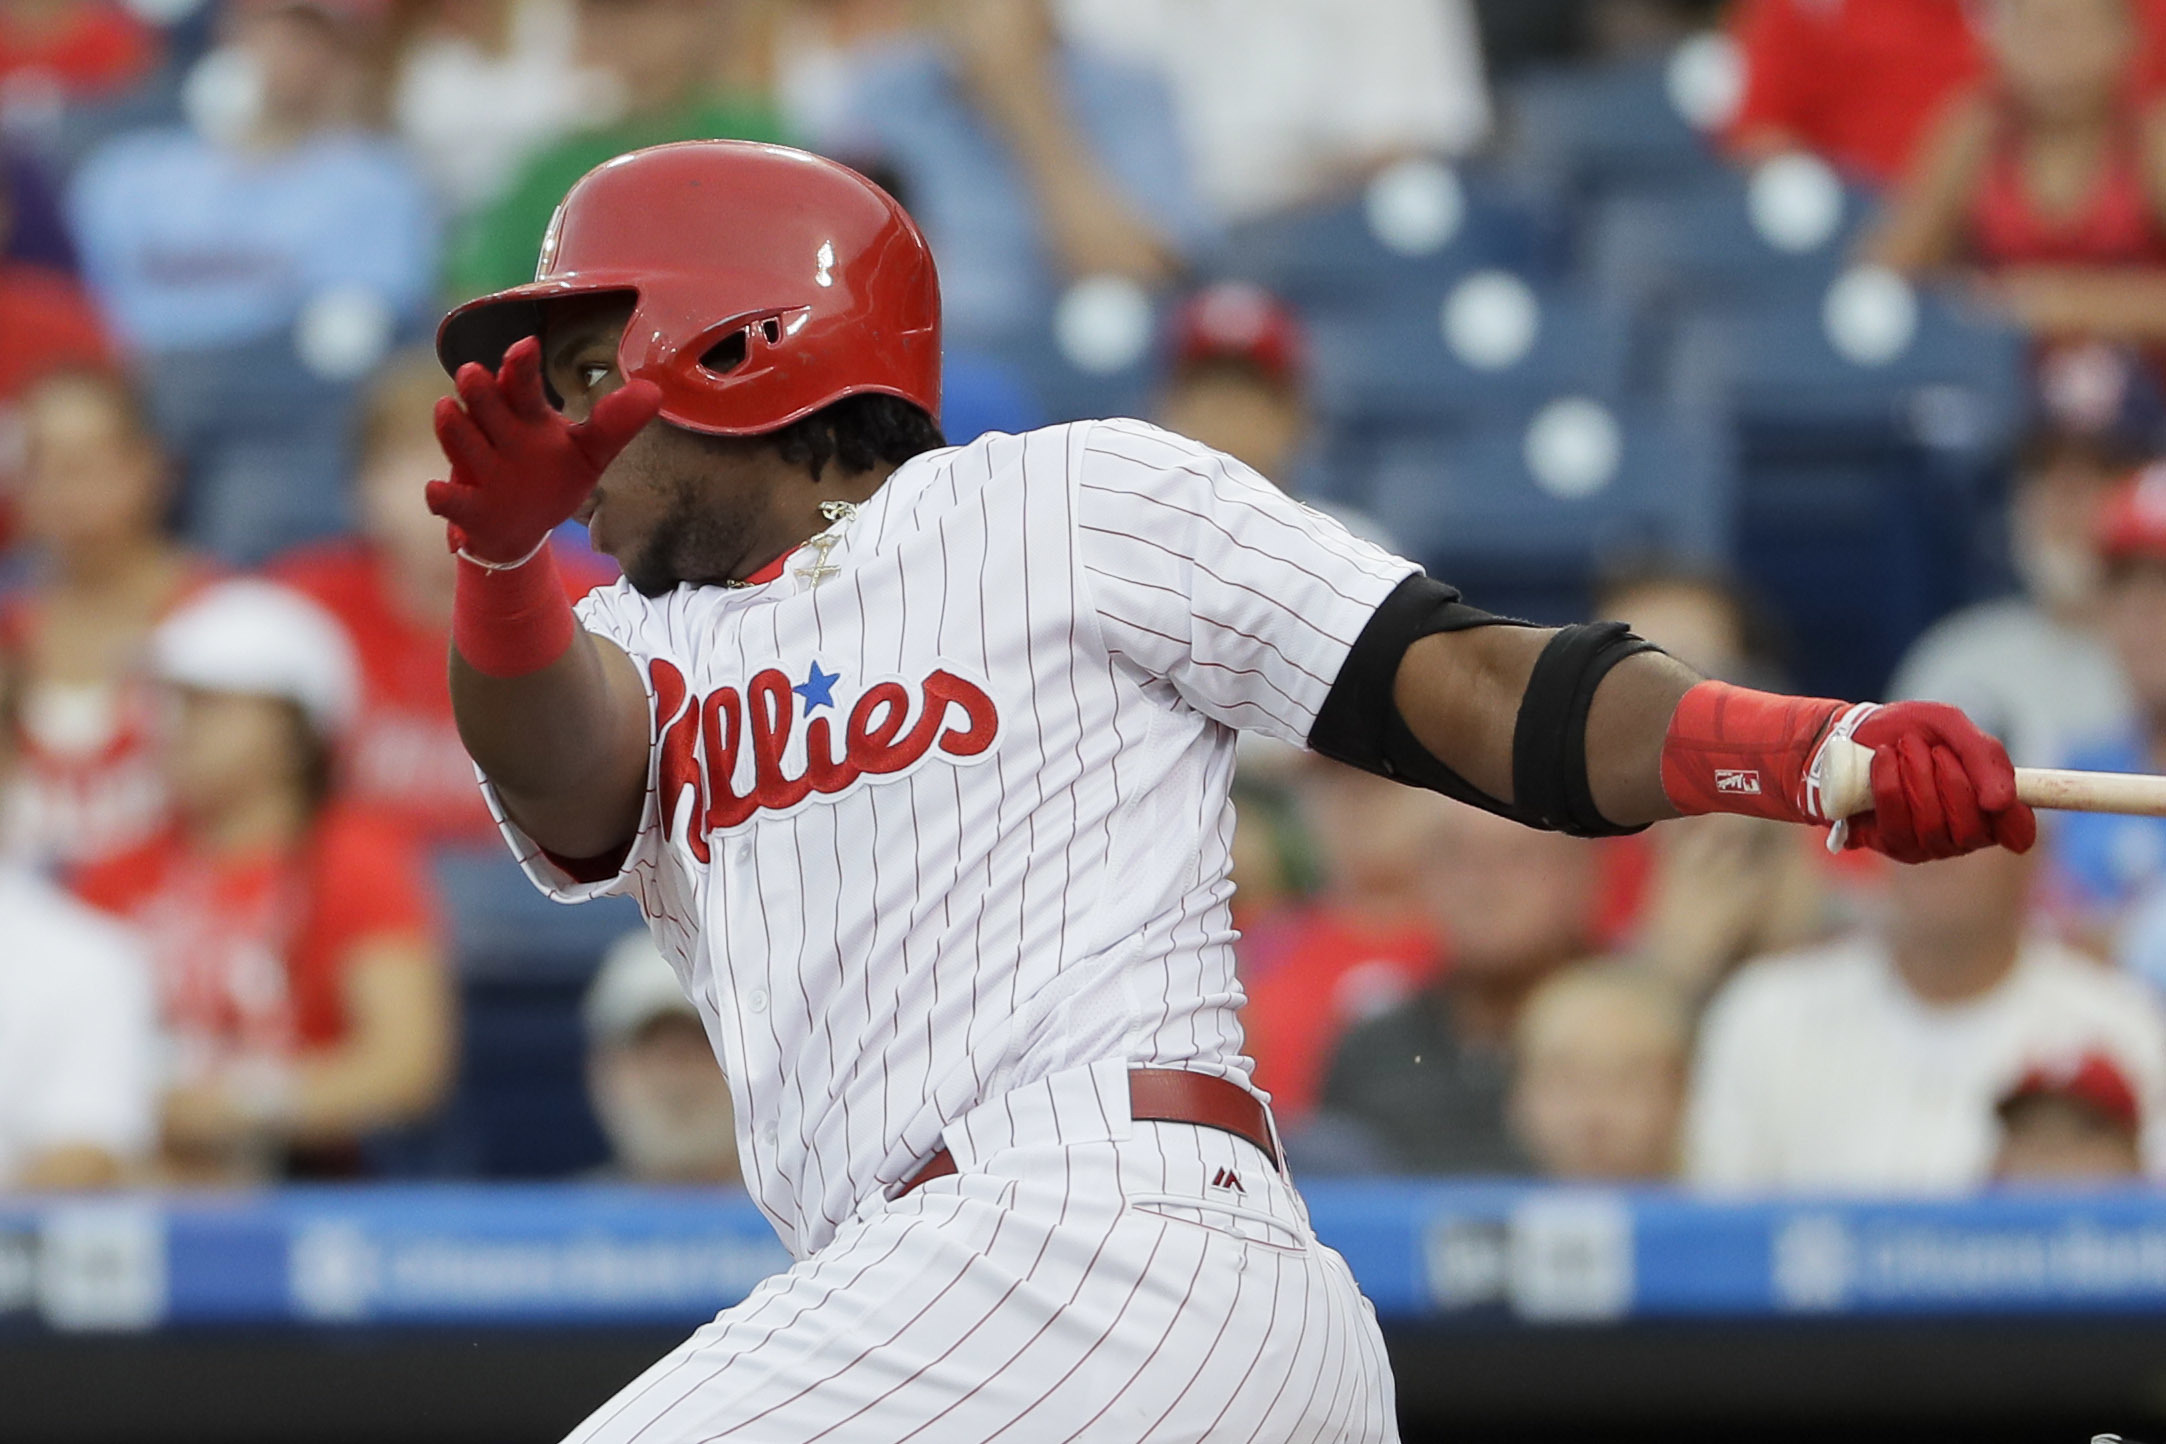 Philadelphia Phillies' Maikel Franco follows through after hitting a run-scoring ground-out against Miami Marlins starting pitcher Jose Fernandez during the first inning of a baseball game, Monday, July 18, 2016, in Philadelphia. (AP Photo/Matt Slocum)